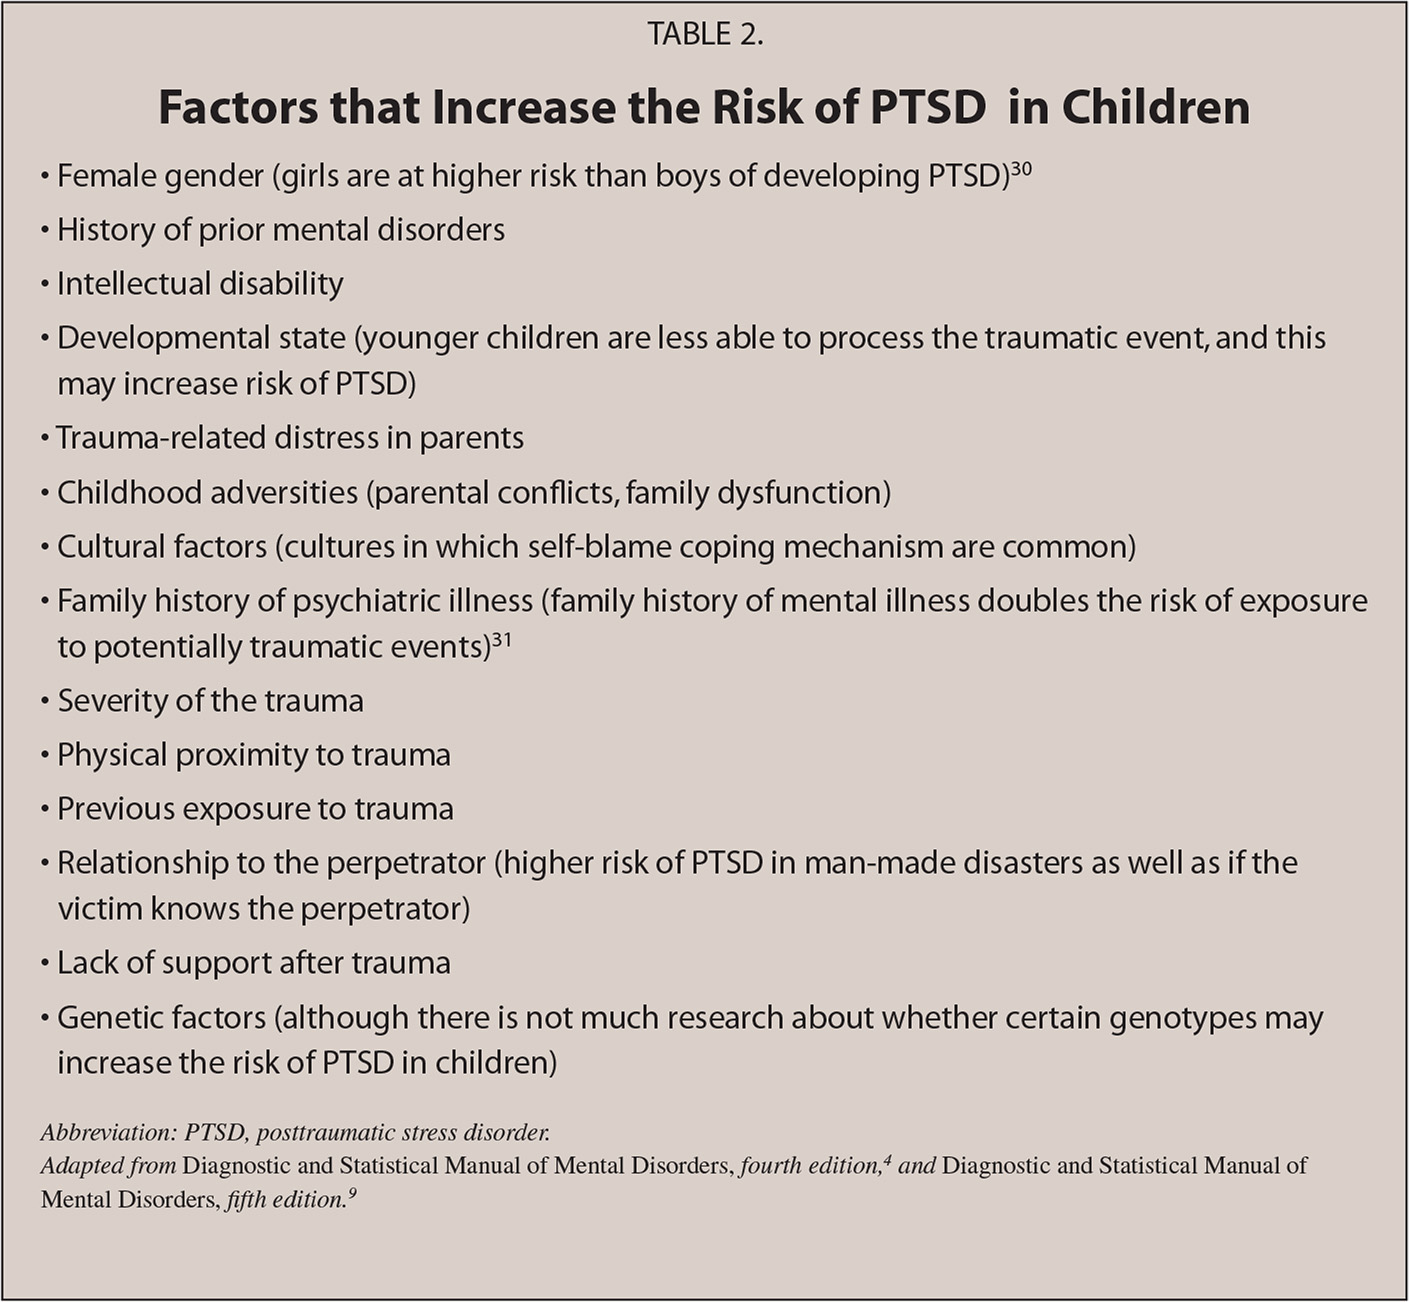 adolescent suicide and posttraumatic stress disorder research adolescent suicide and posttraumatic stress disorder research papers